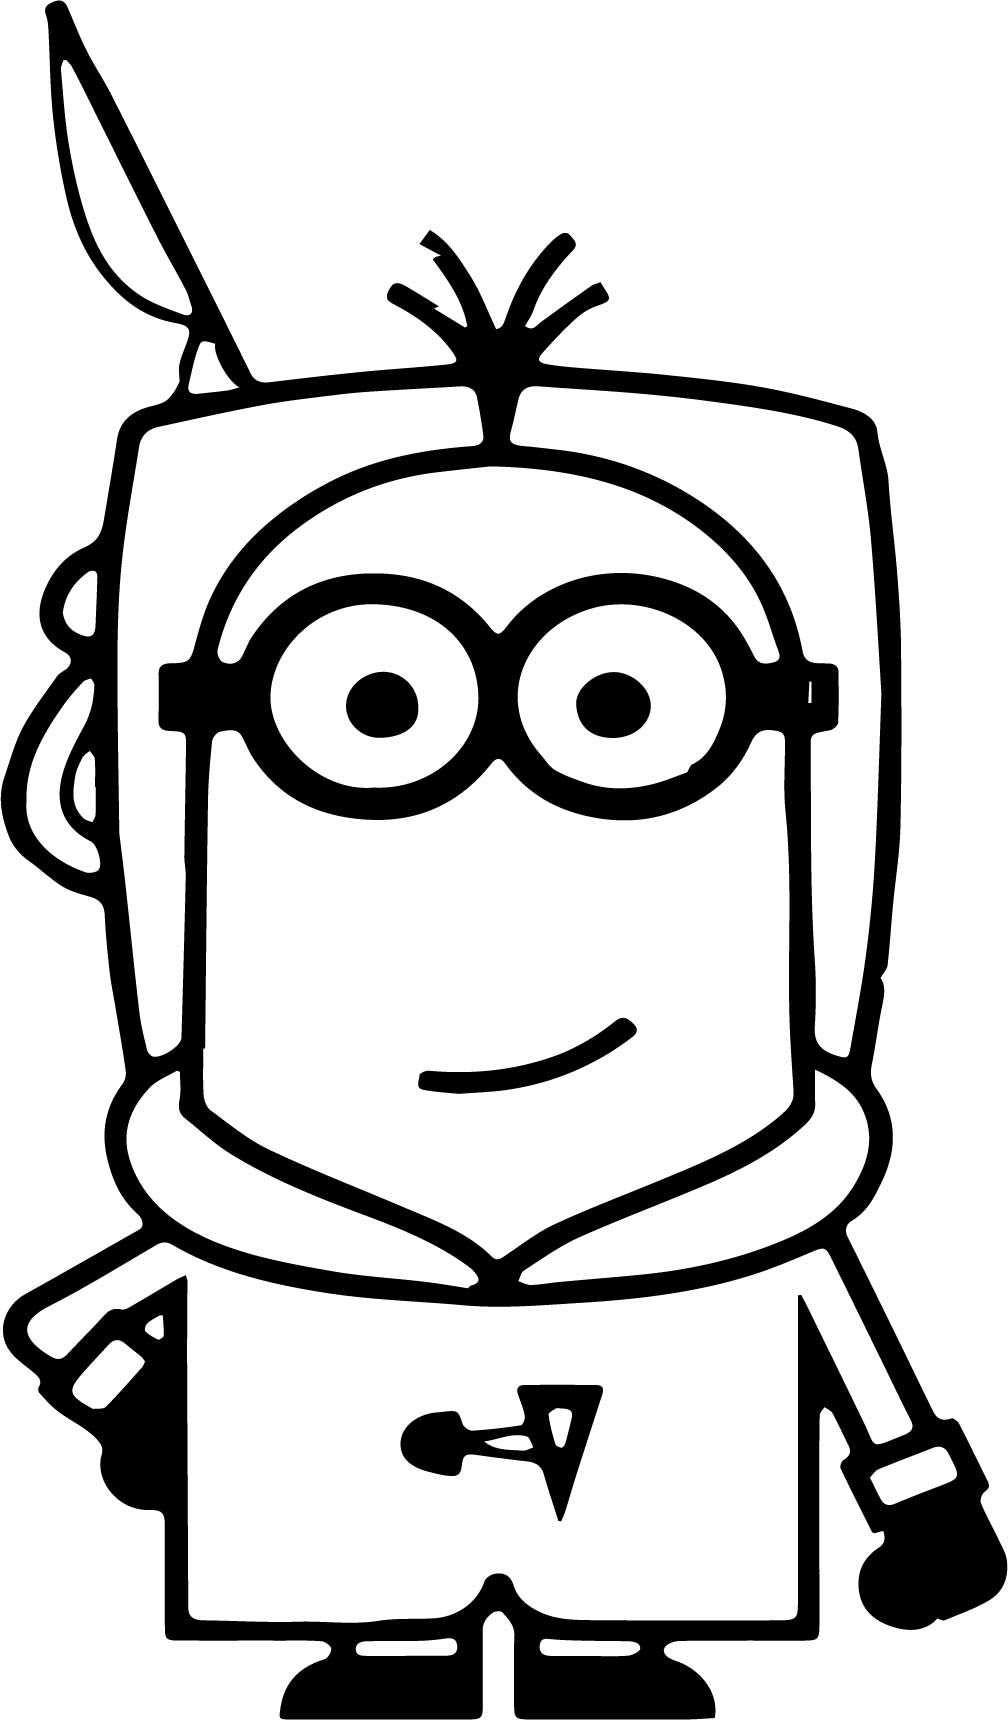 Minions Antartica Travel Coloring Page Wecoloringpage